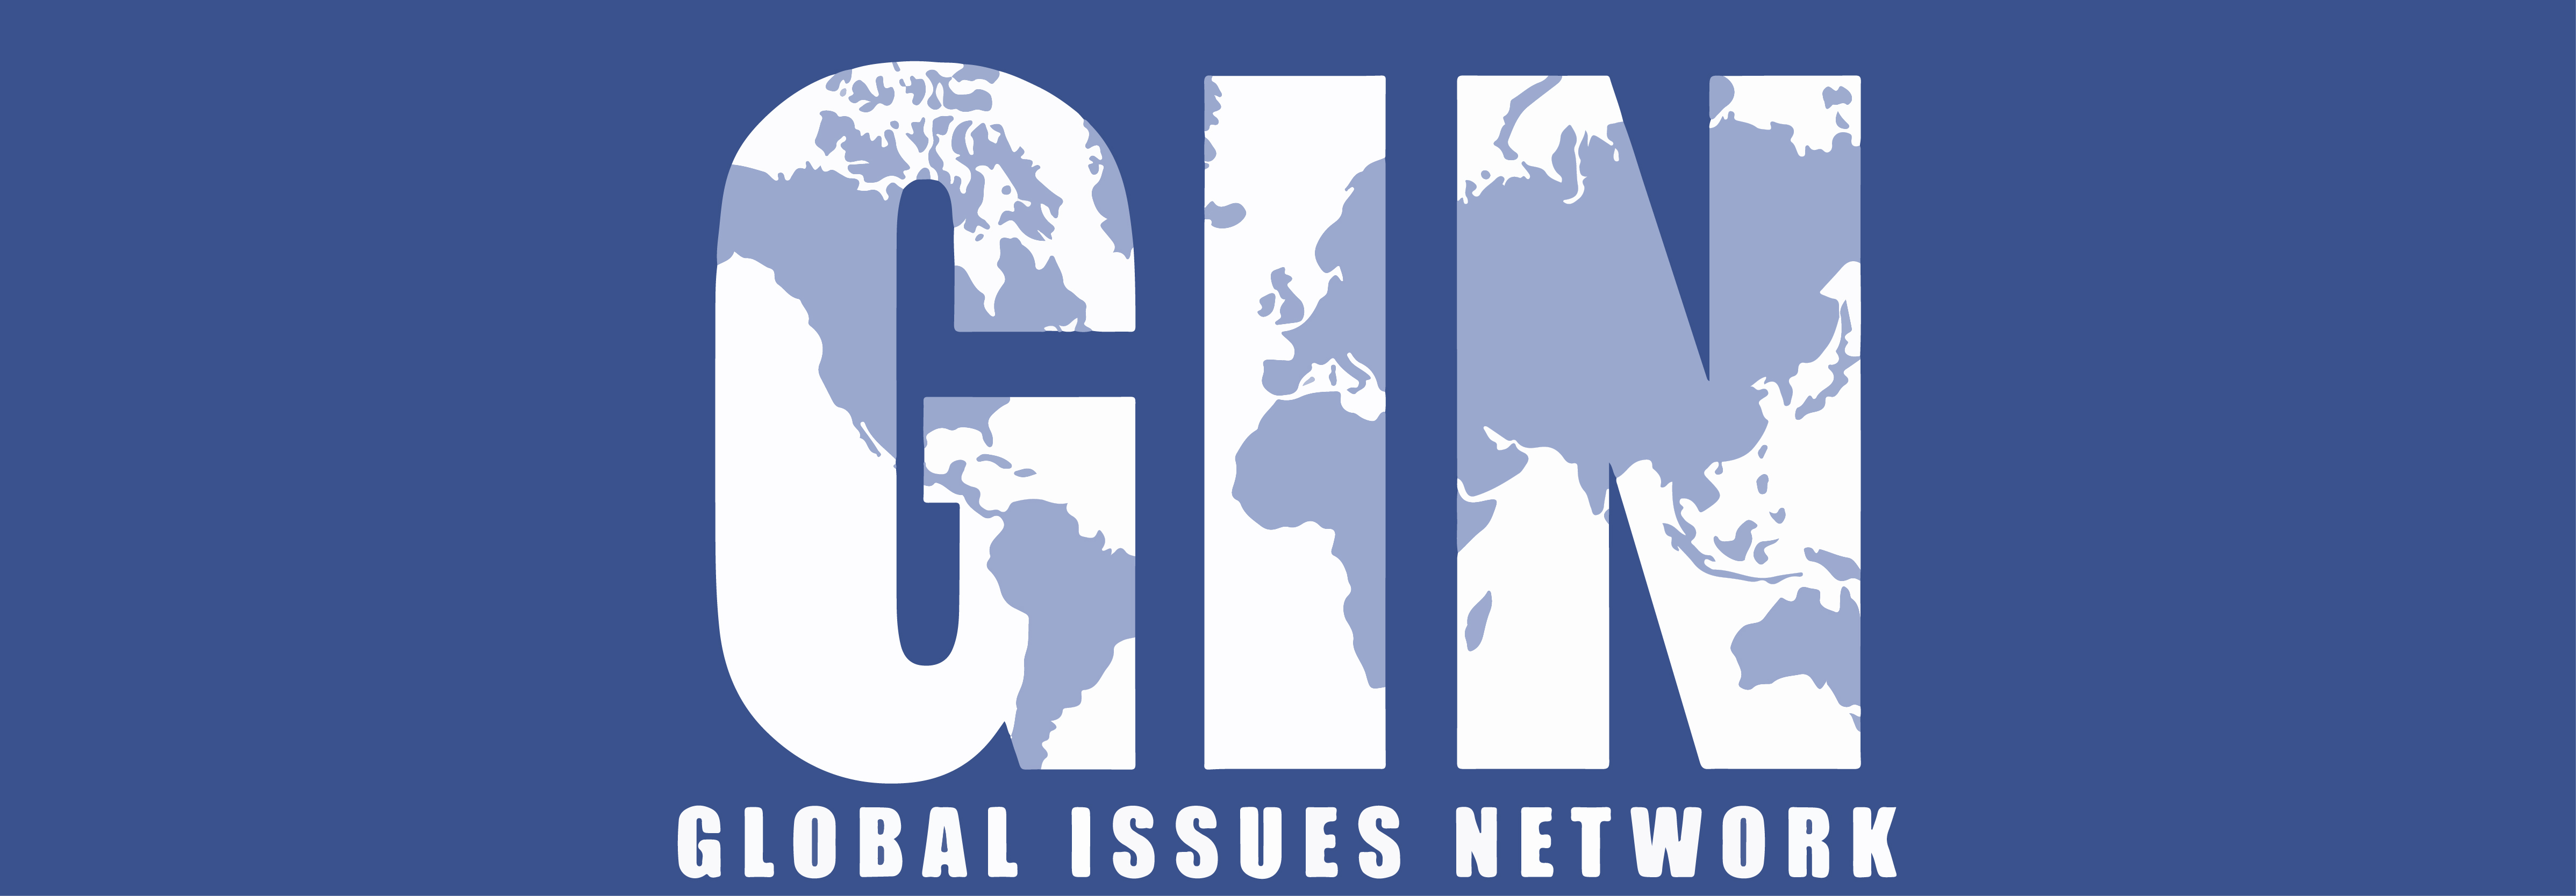 learn about our global issues global issues network global issues network